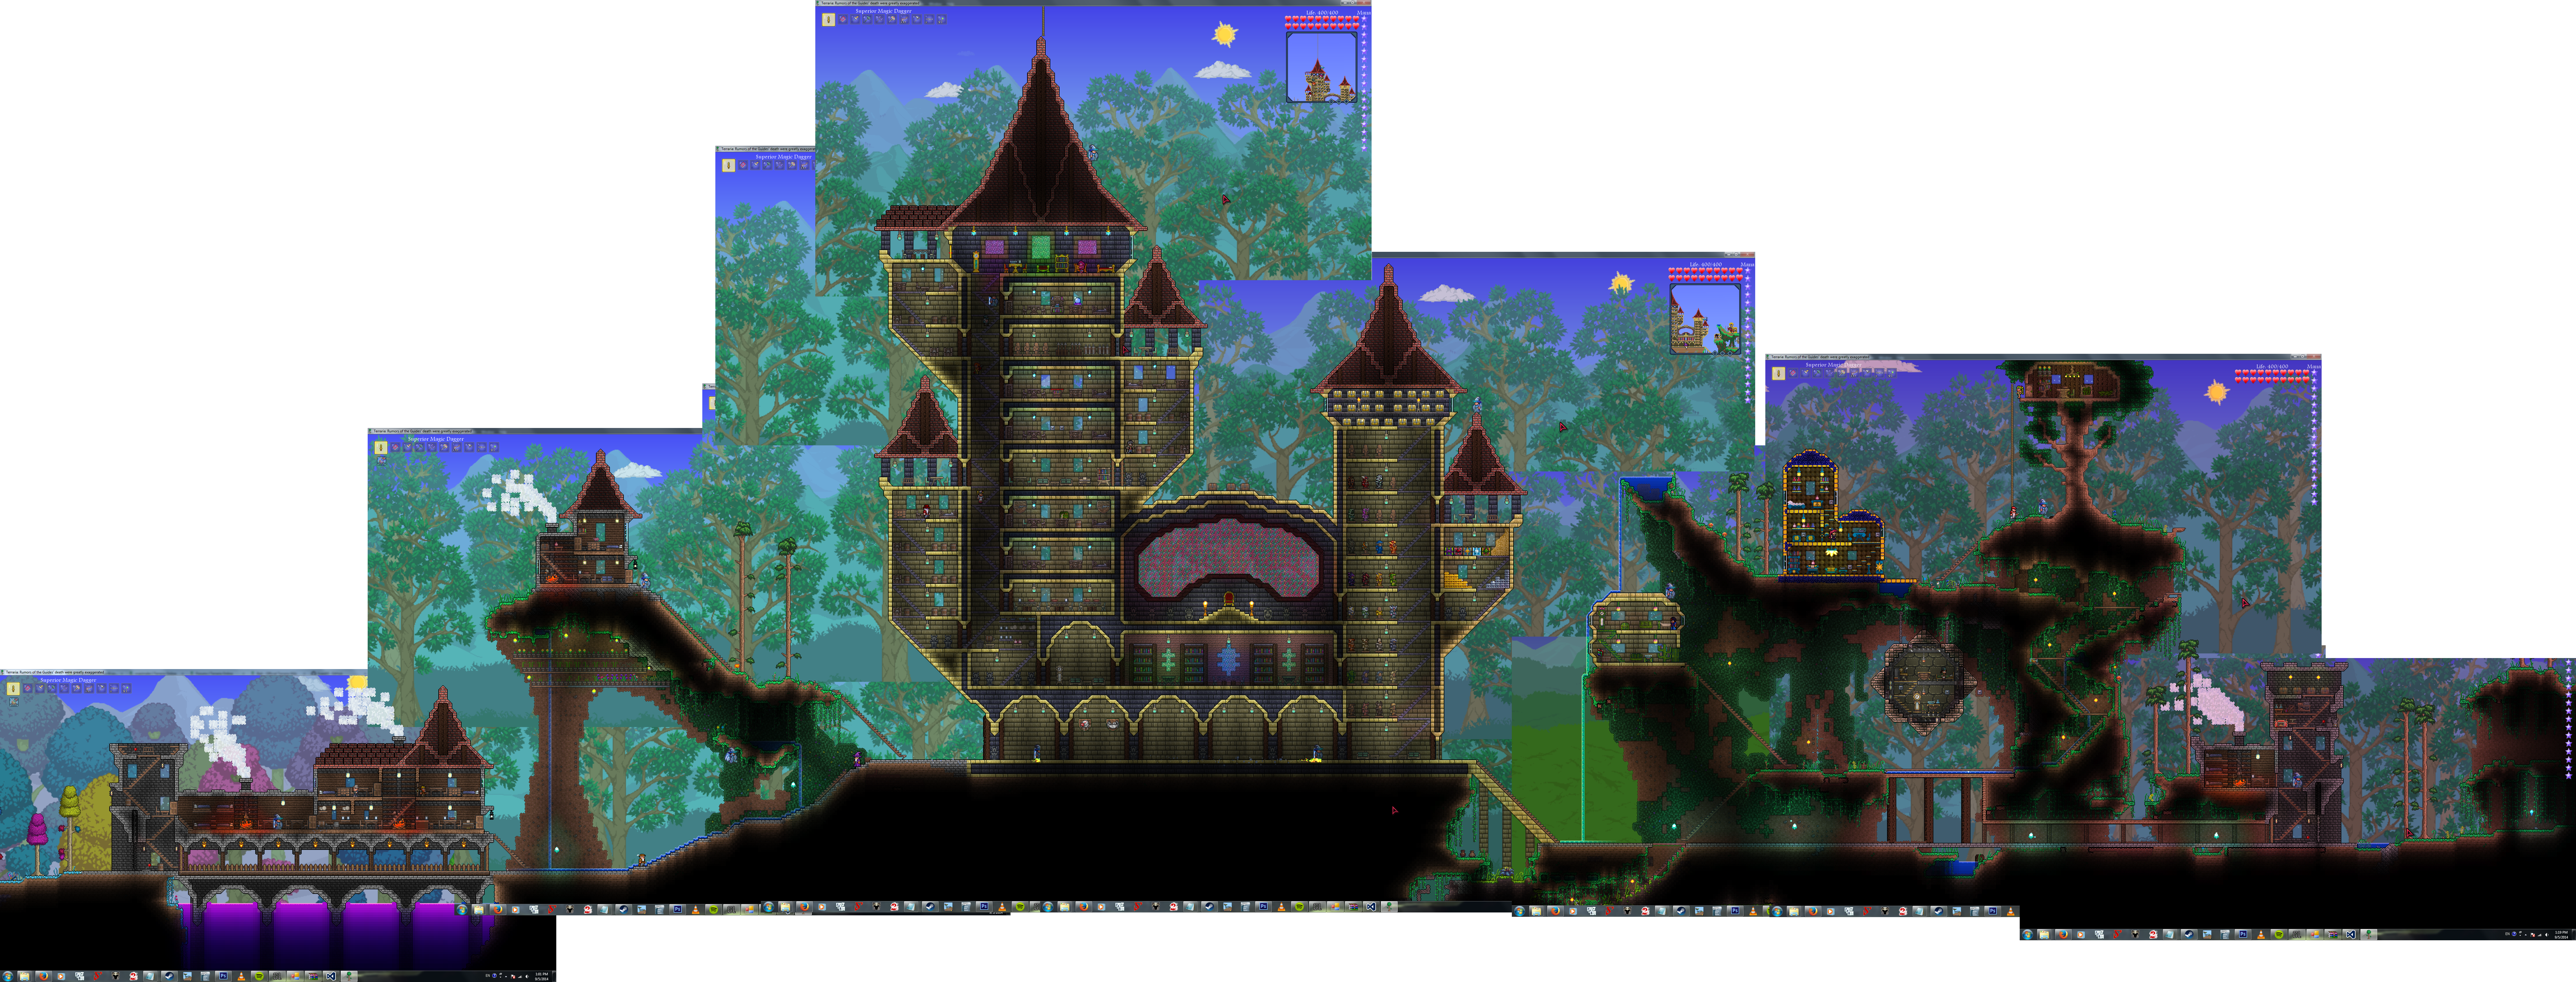 Terraria-07-Castle+Village by Unfiltered-N